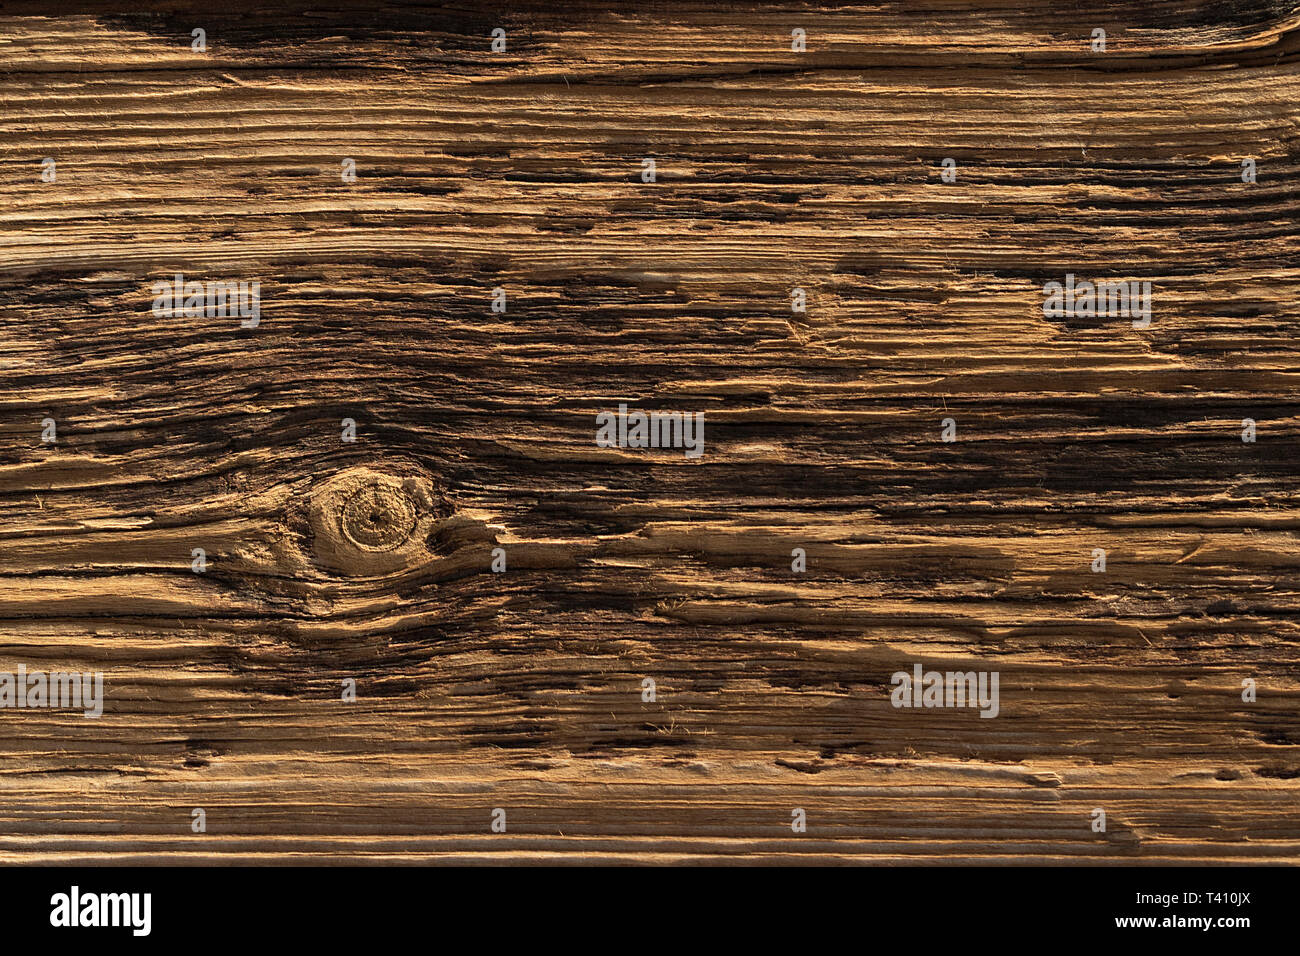 a deeply textured weathered old wooden board with with a single knot breaking the pattern - Stock Image